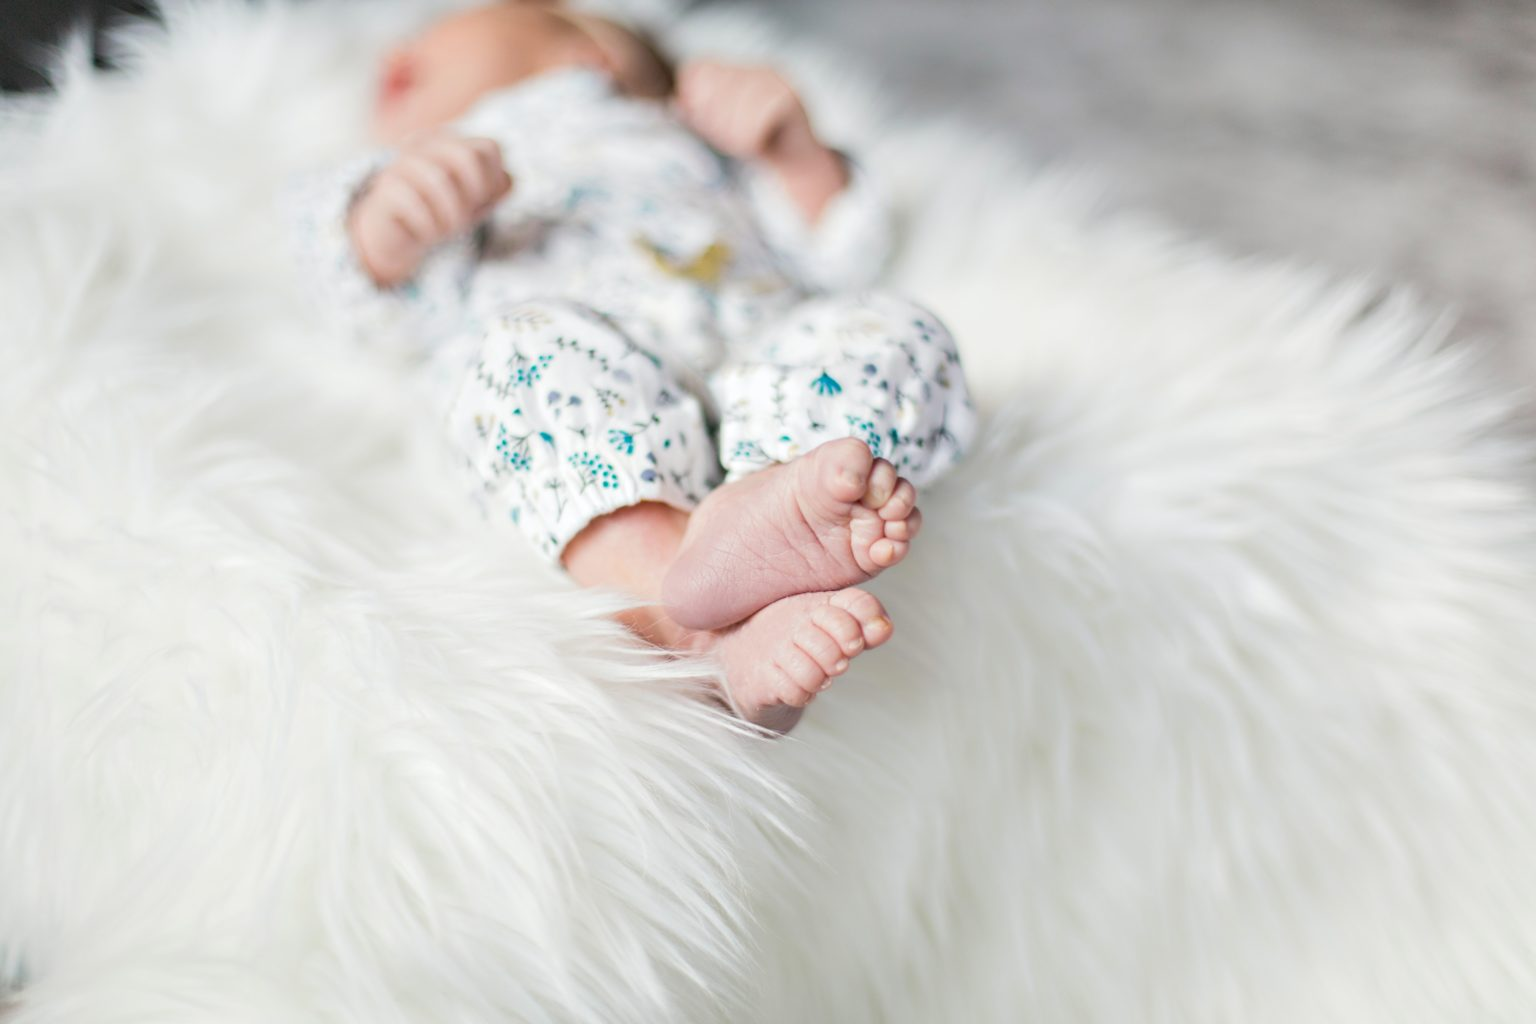 Up close photo of baby feed on a fluffy white rug with their face hidden